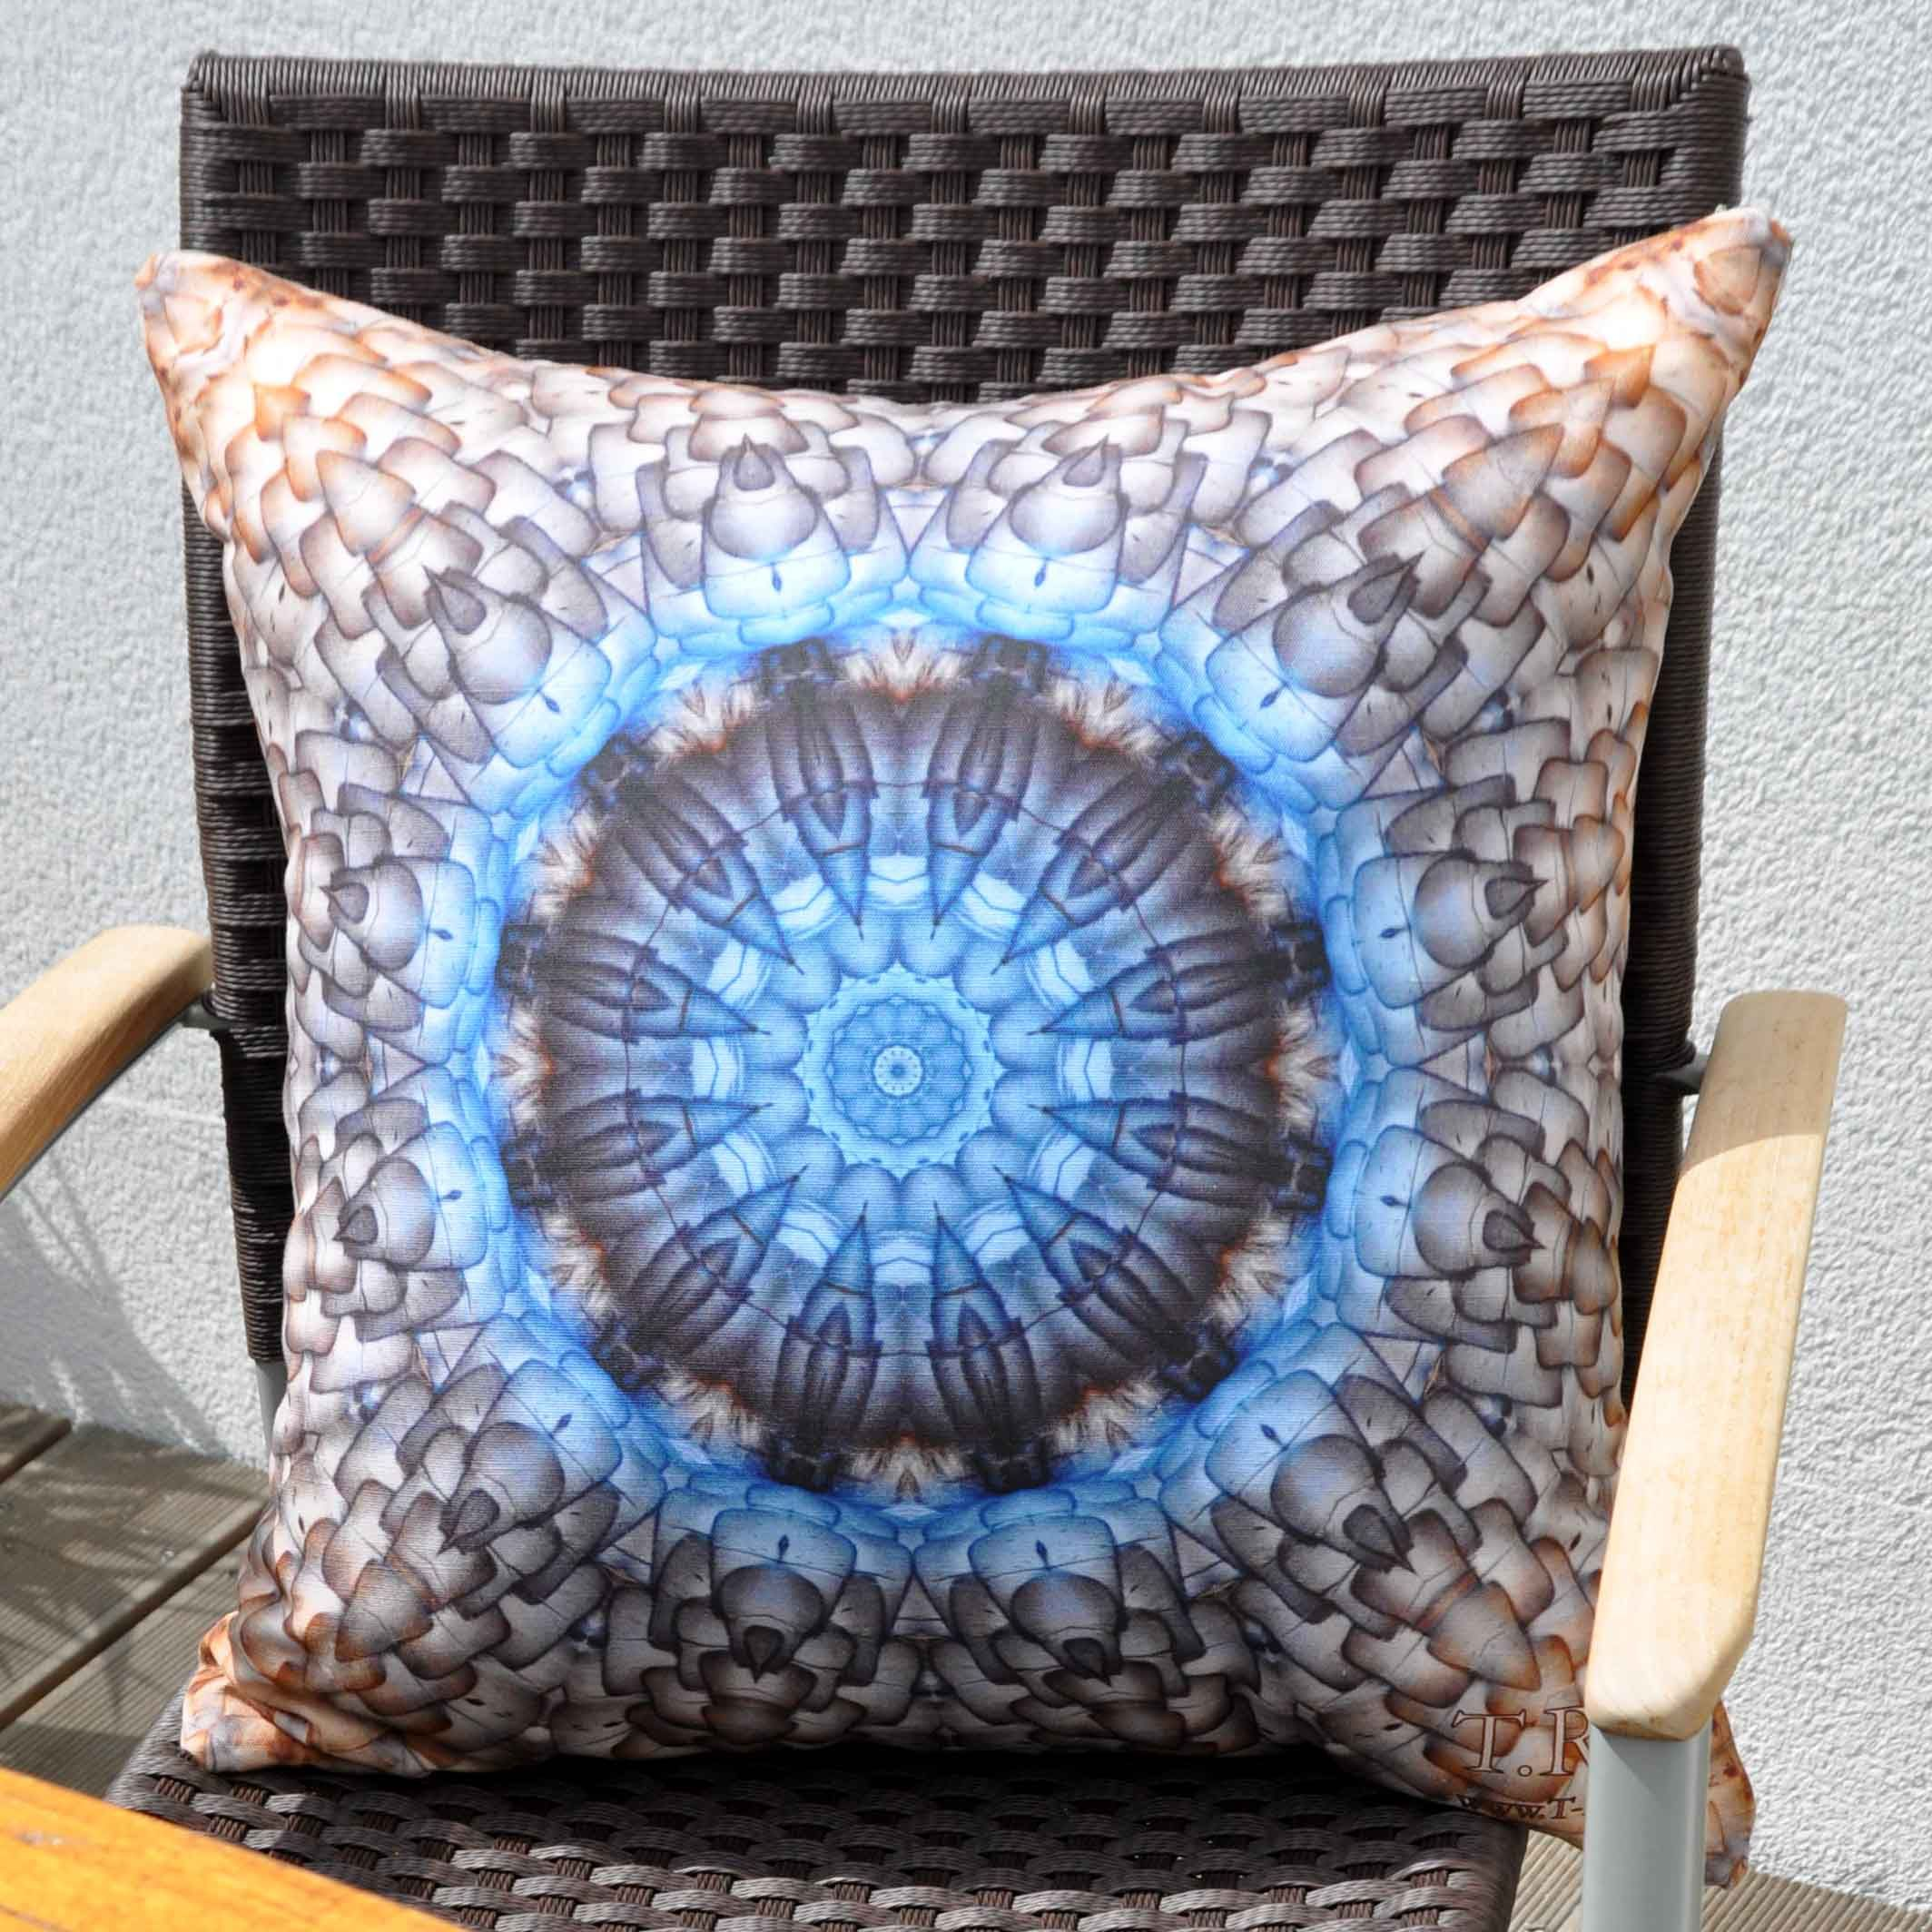 Blue cushion blaues kissen pillows